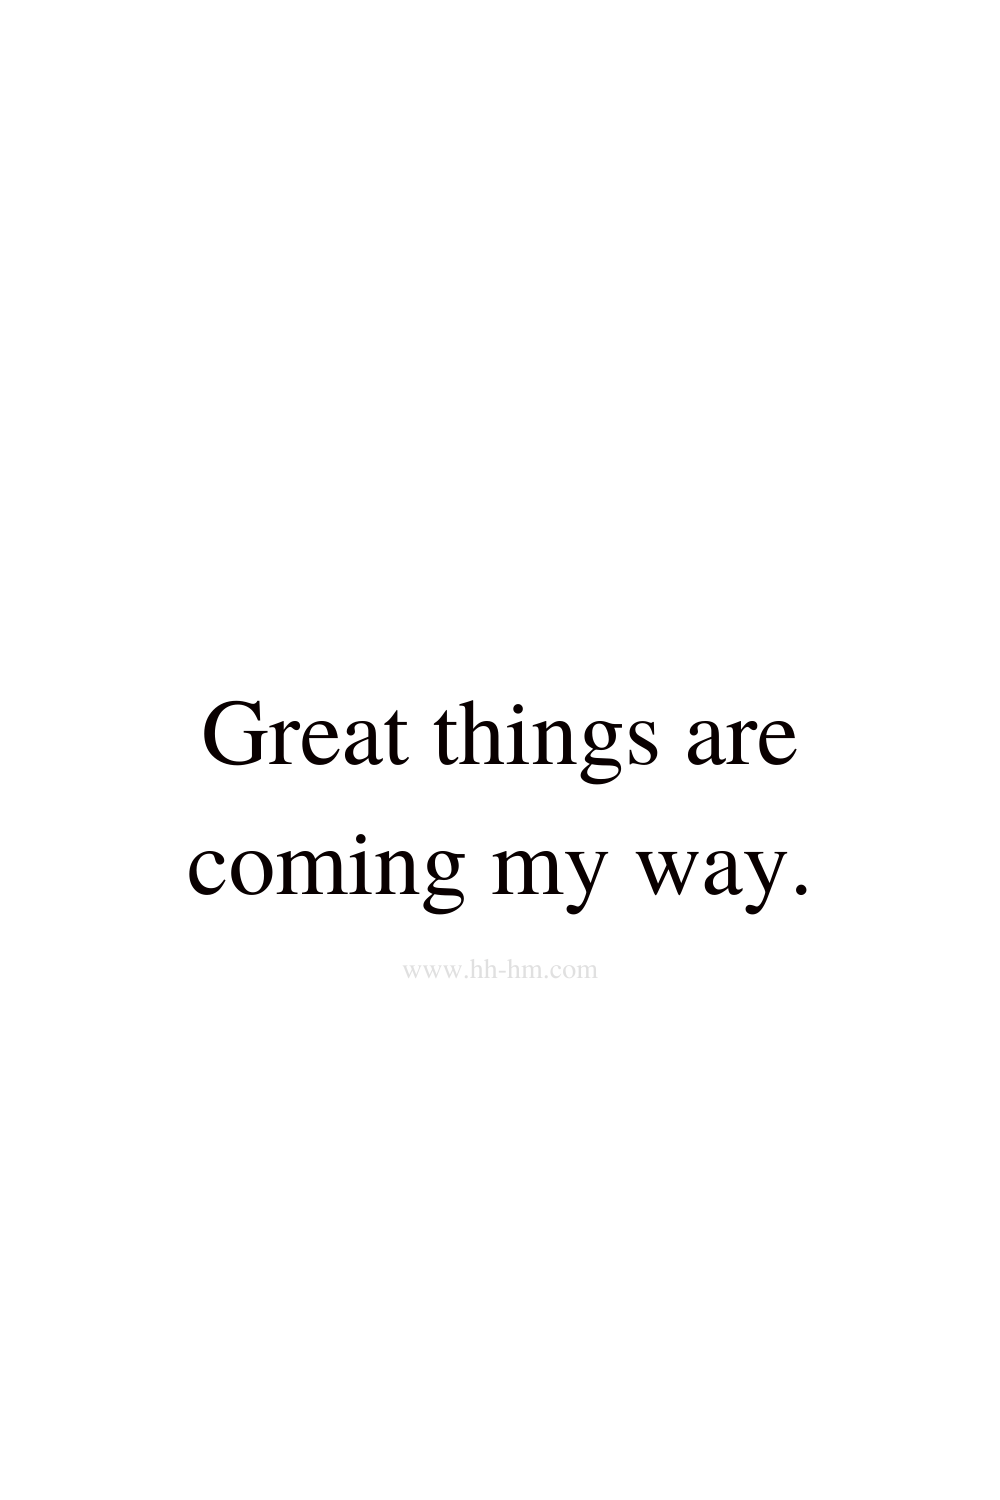 great things are coming my way - morning affirmations